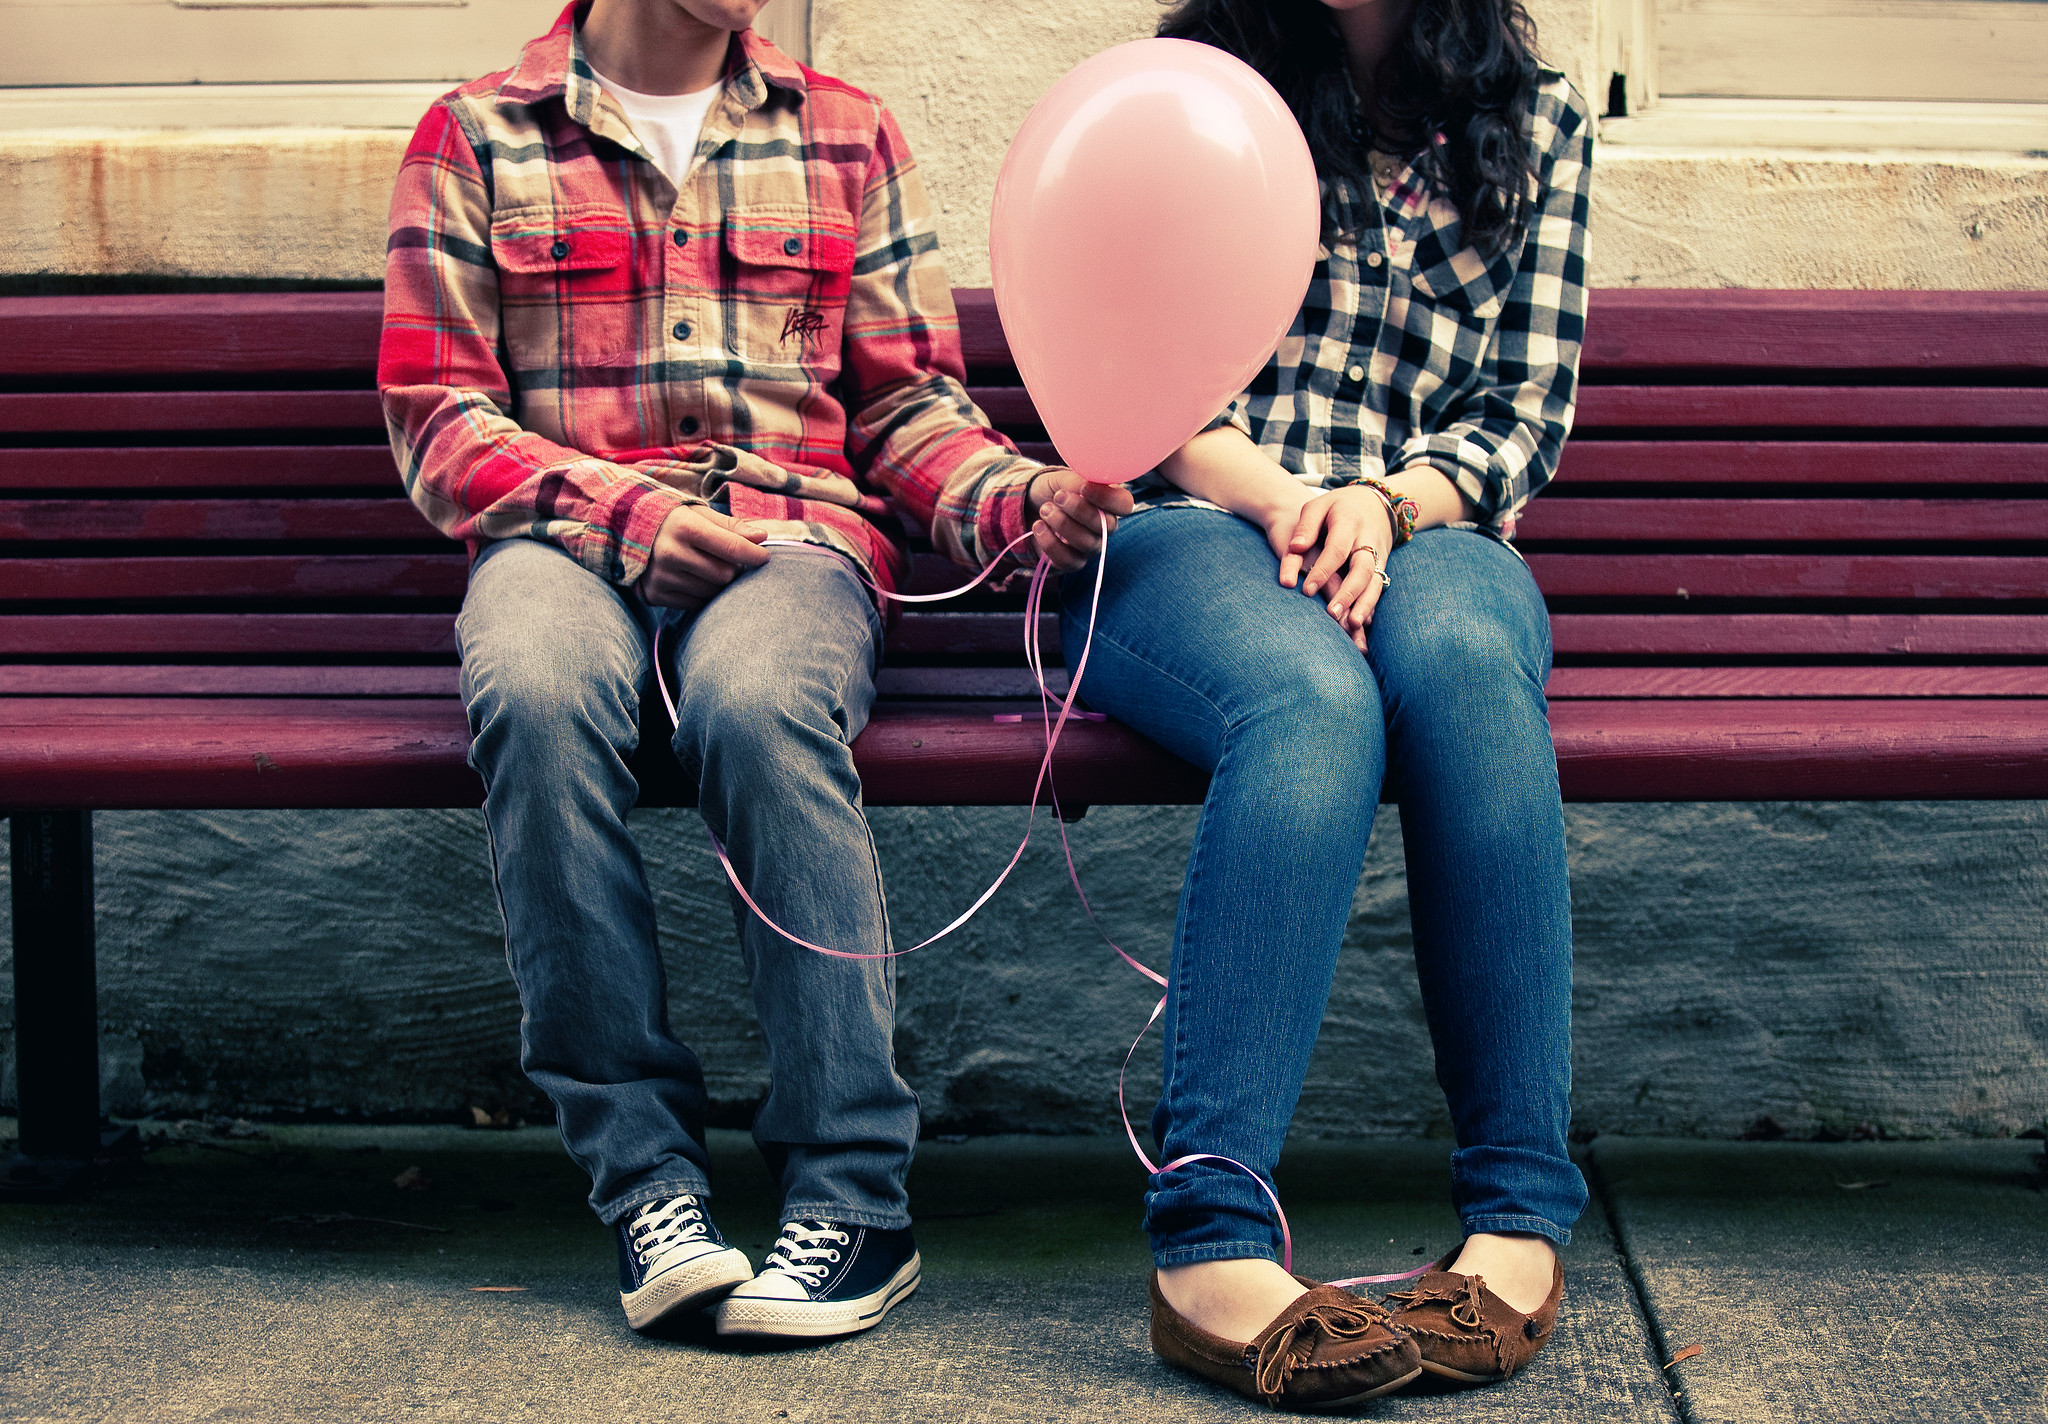 Two people sitting on a bench, each with shy body language, one offering to give the other a balloon